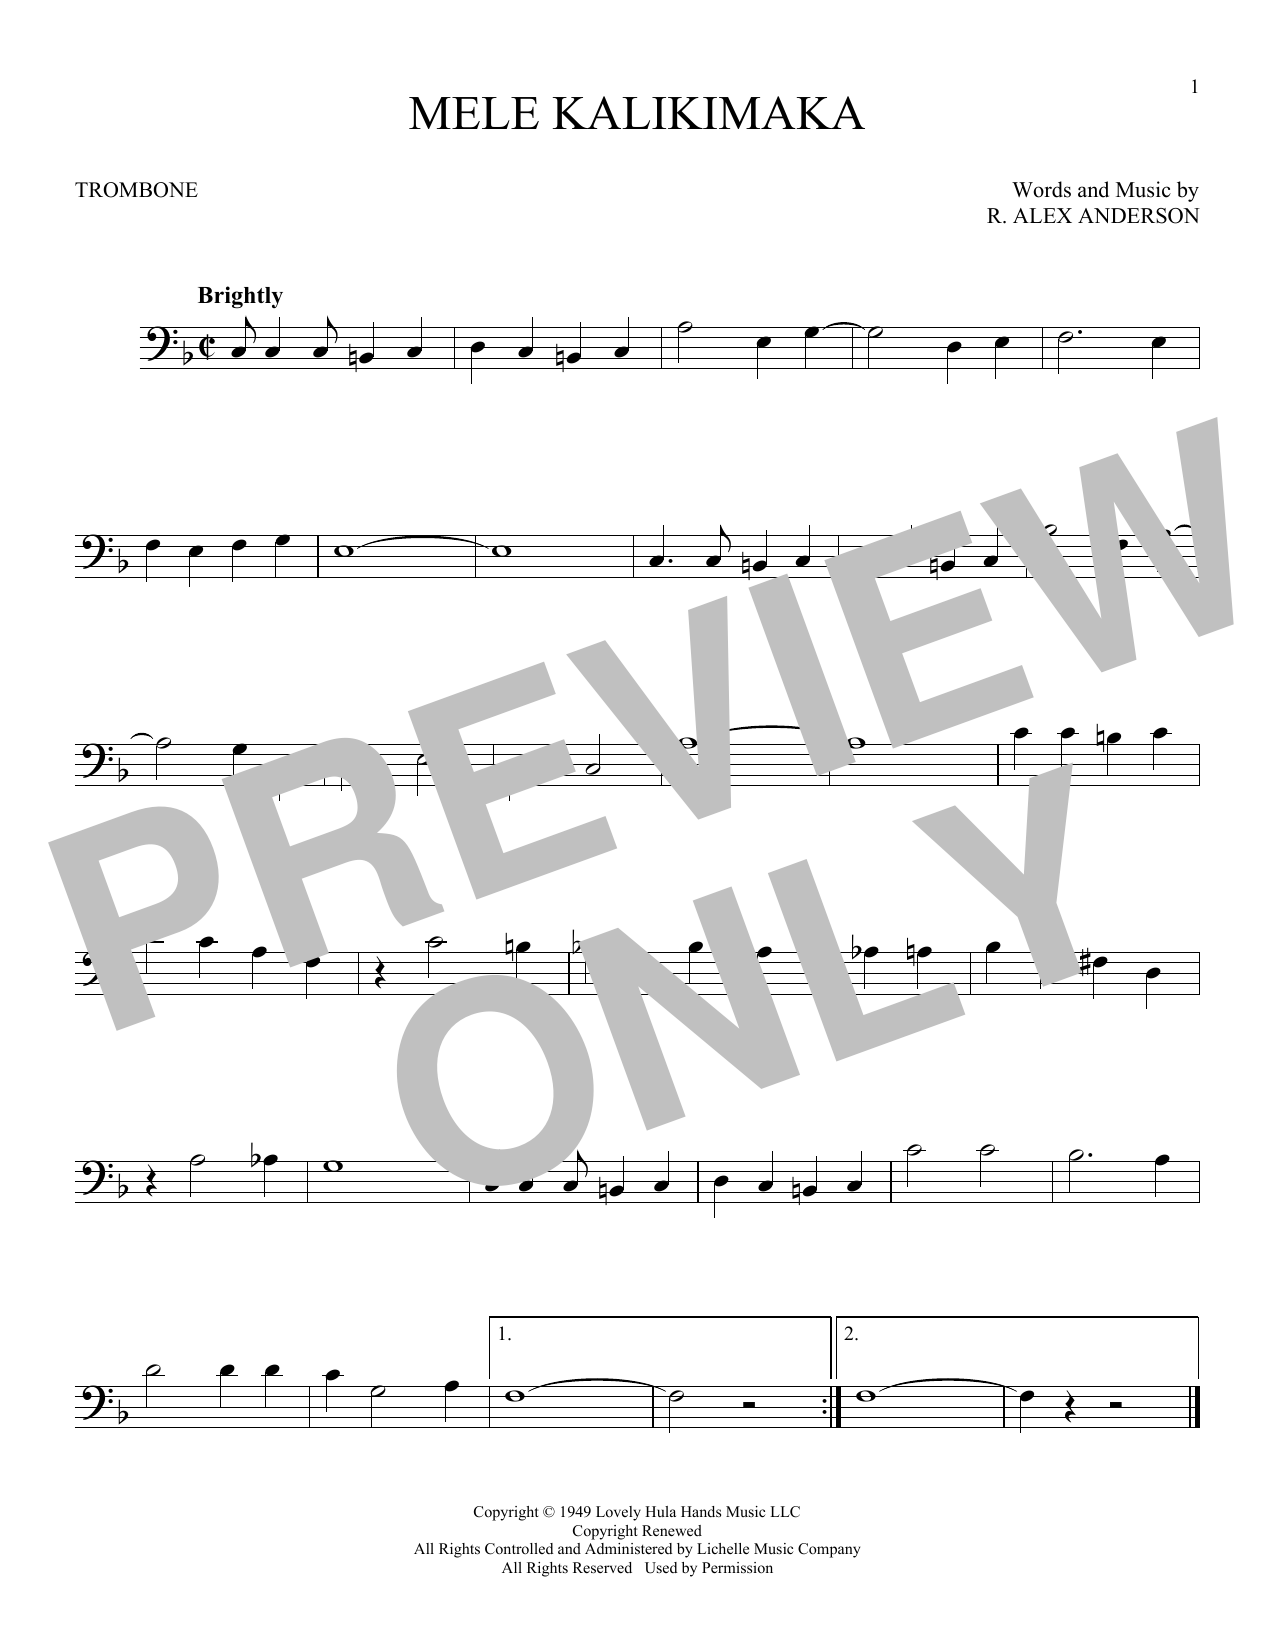 Mele Kalikimaka Sheet Music